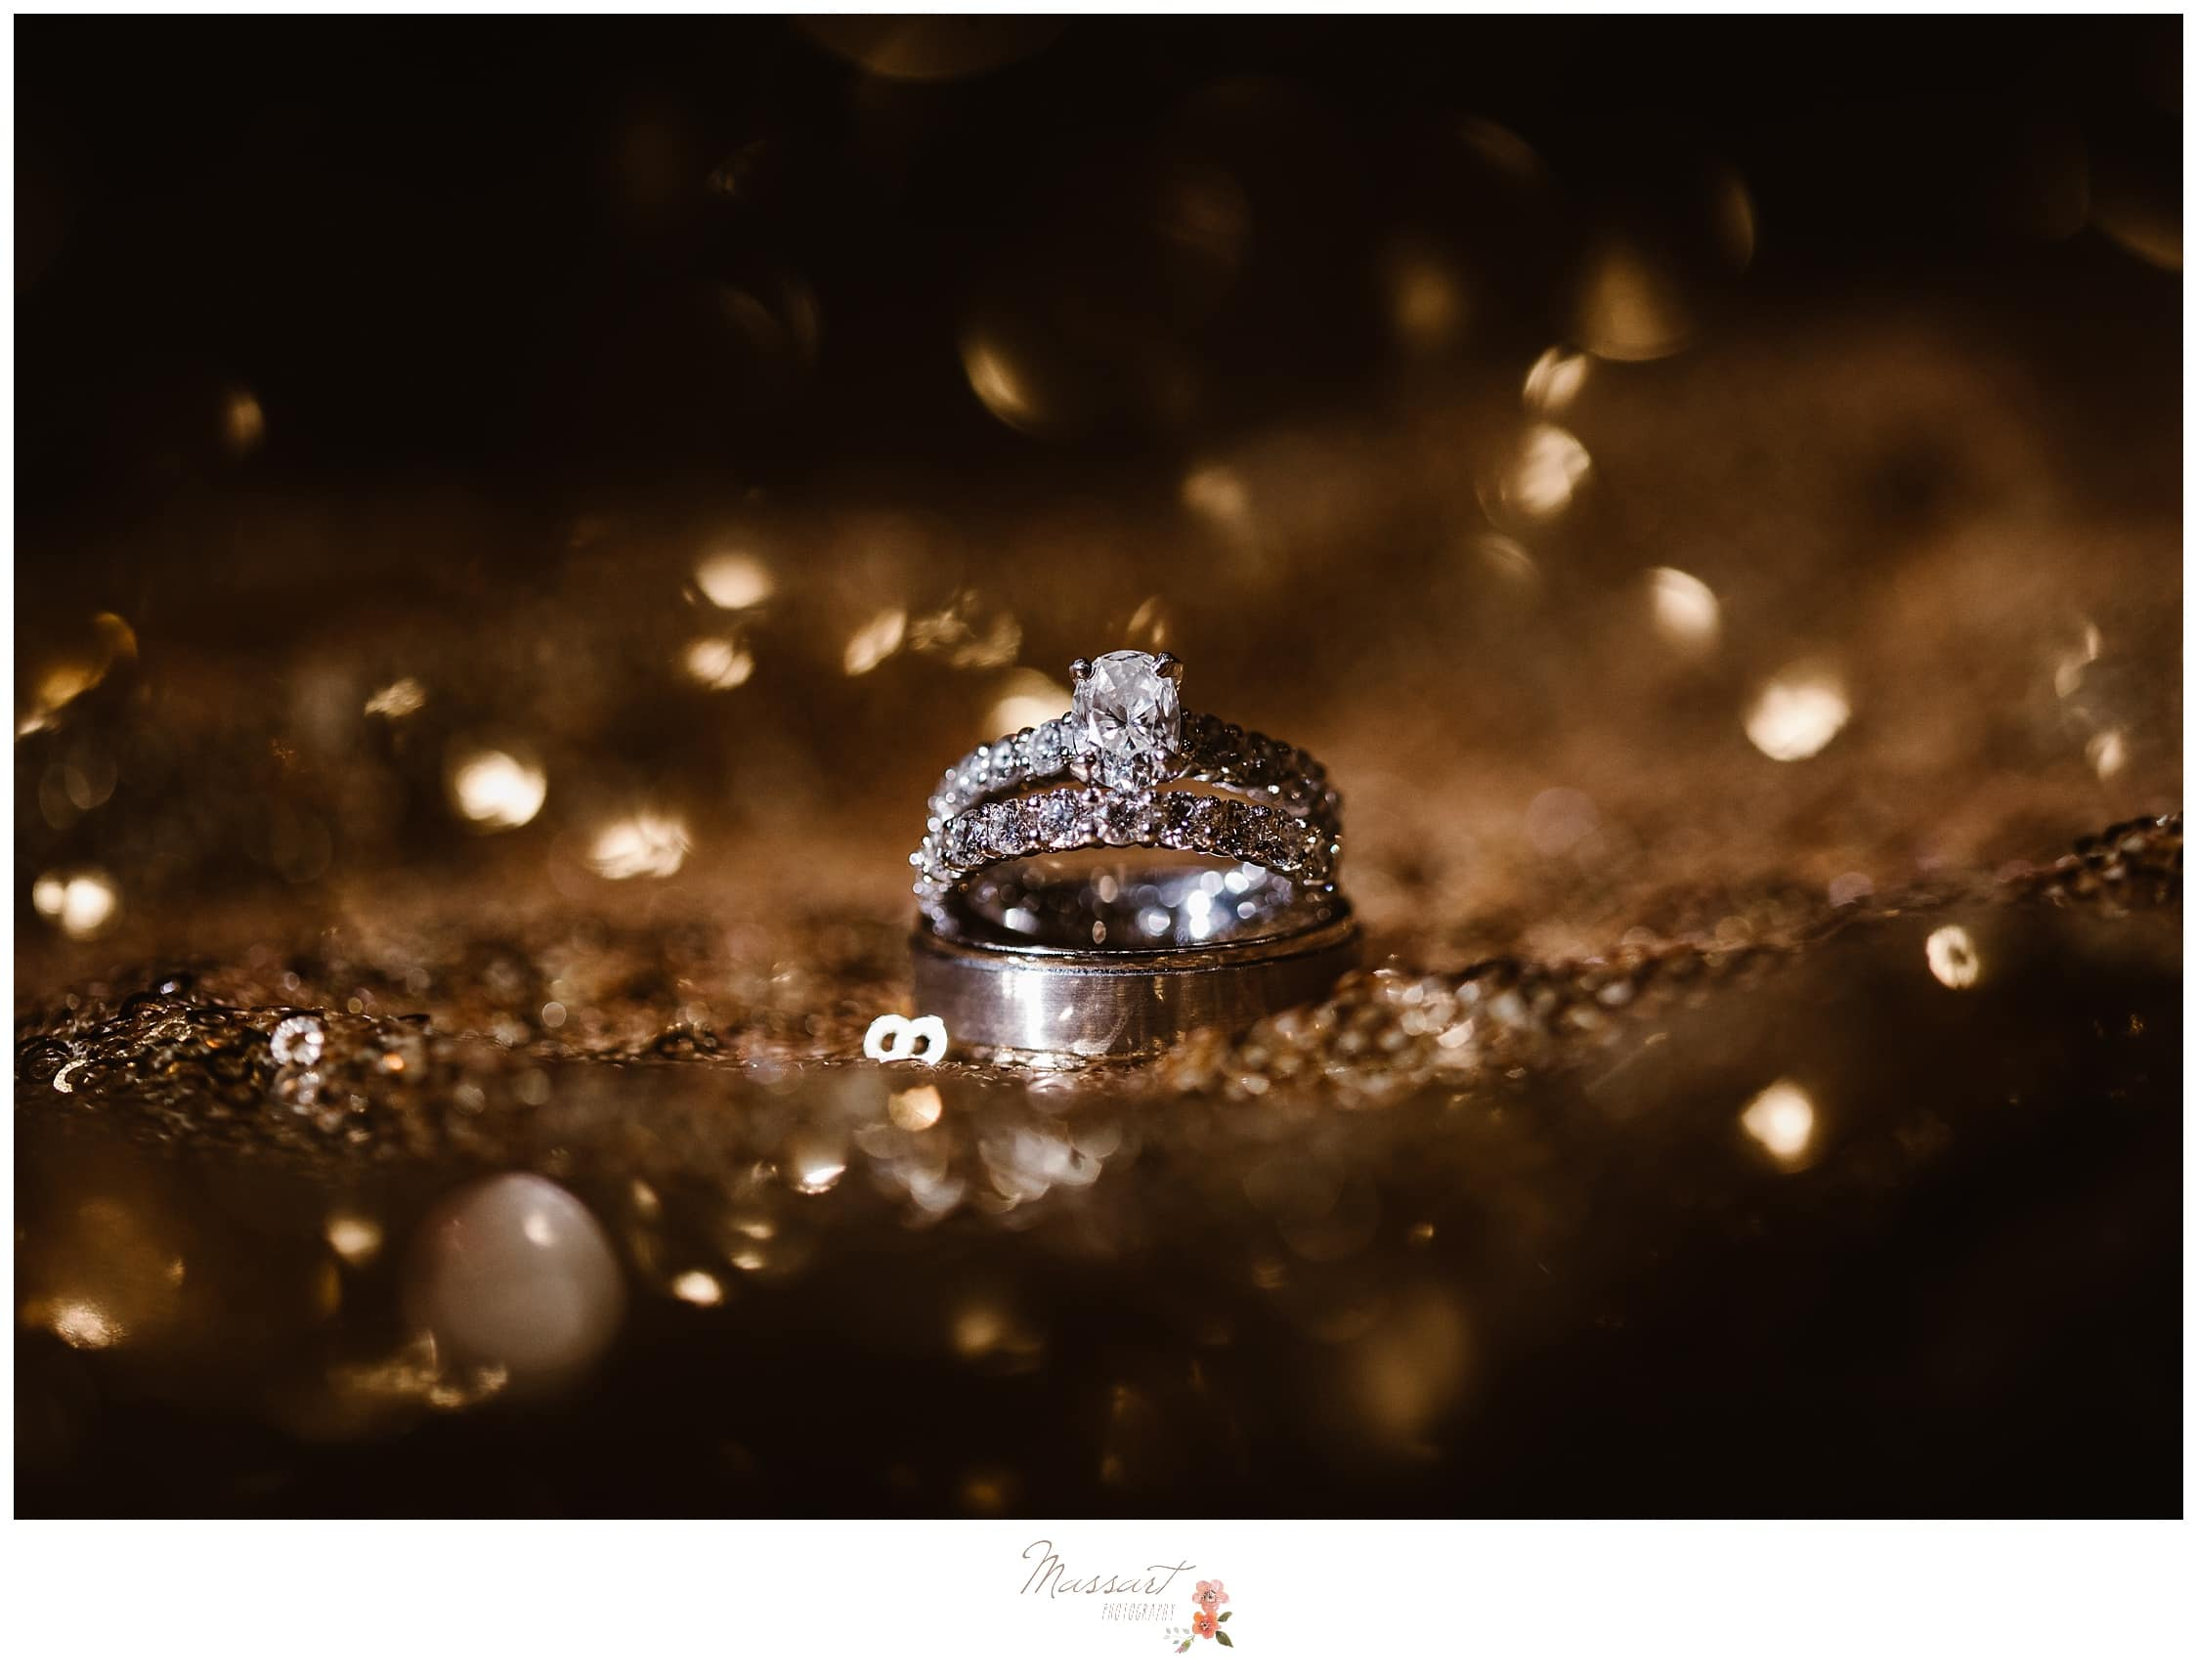 Portrait of the bride and groom's wedding ring on a glittery table cloth photographed by Massart Photography Rhode Island